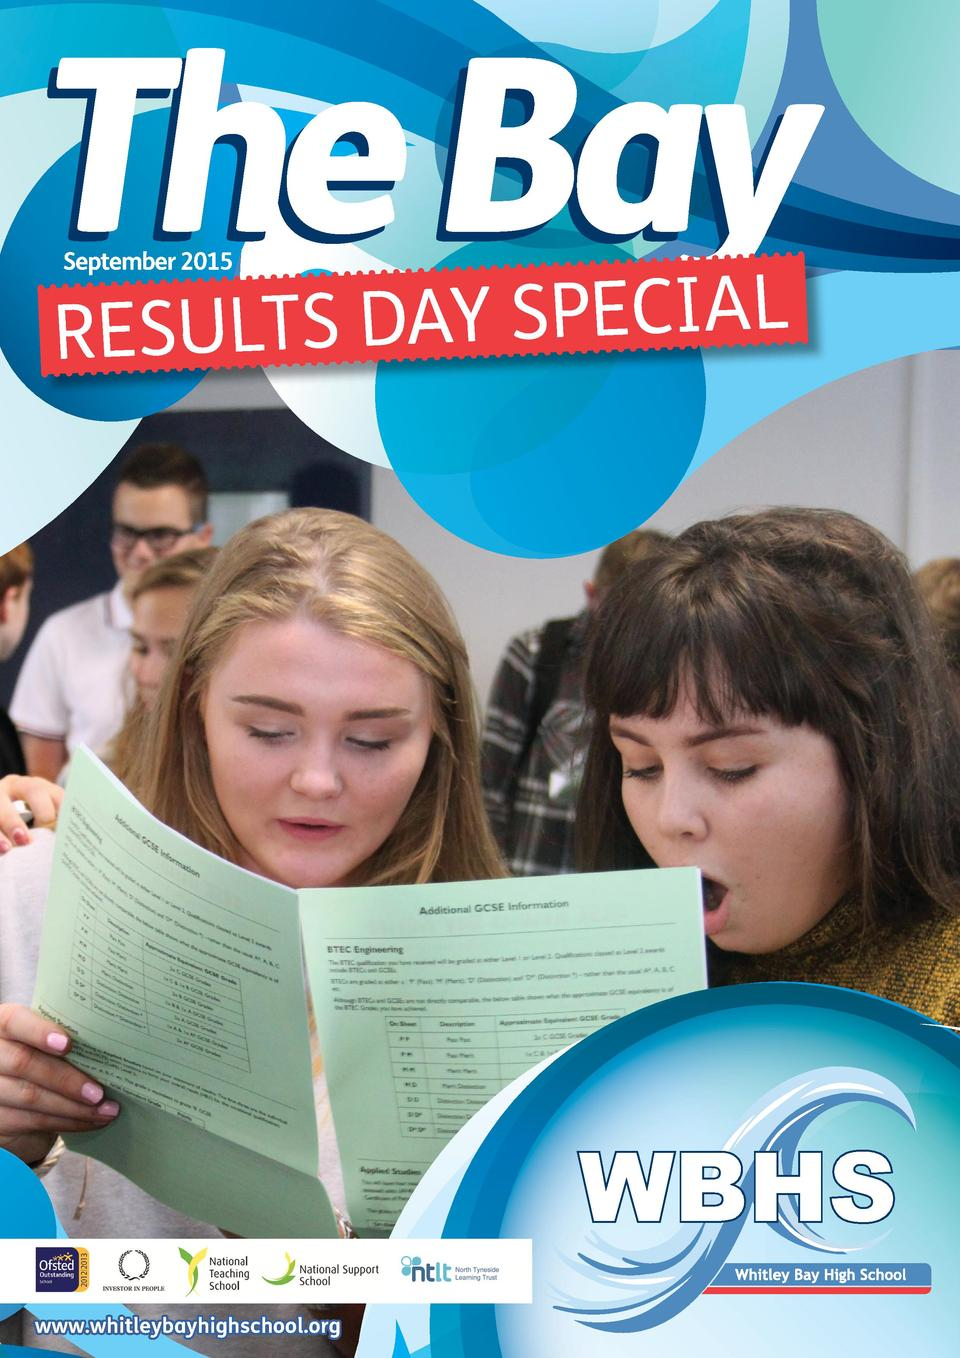 The Bay September 2015  S DAY SPECIAL RESULT  www.whitleybayhighschool.org